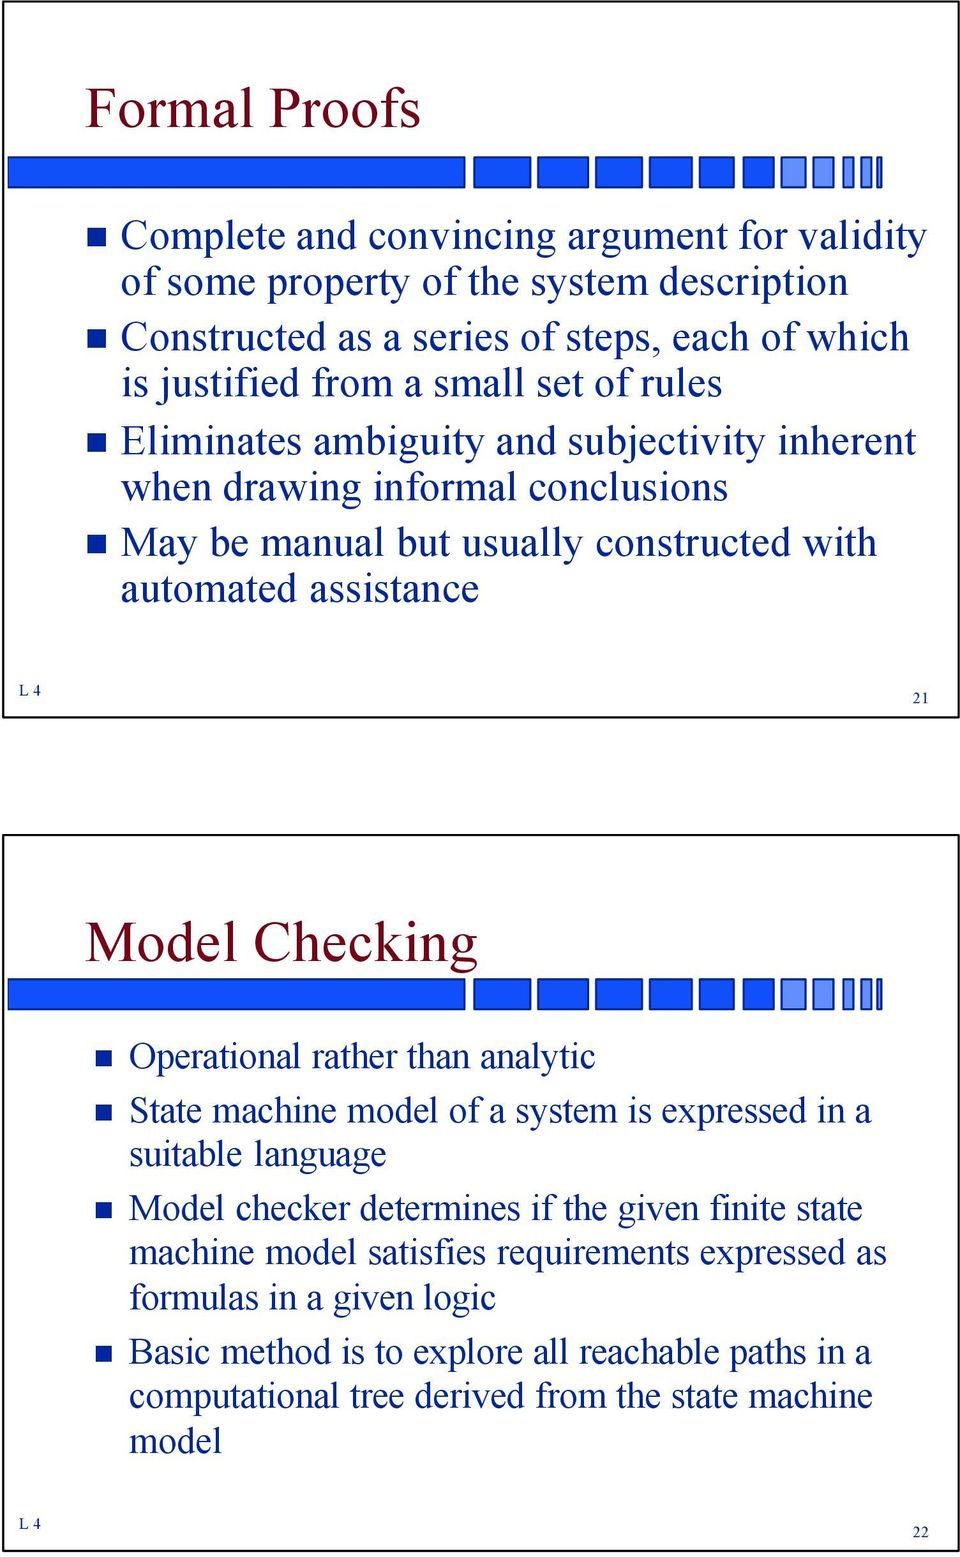 Model Checking Operational rather than analytic State machine model of a system is expressed in a suitable language Model checker determines if the given finite state machine